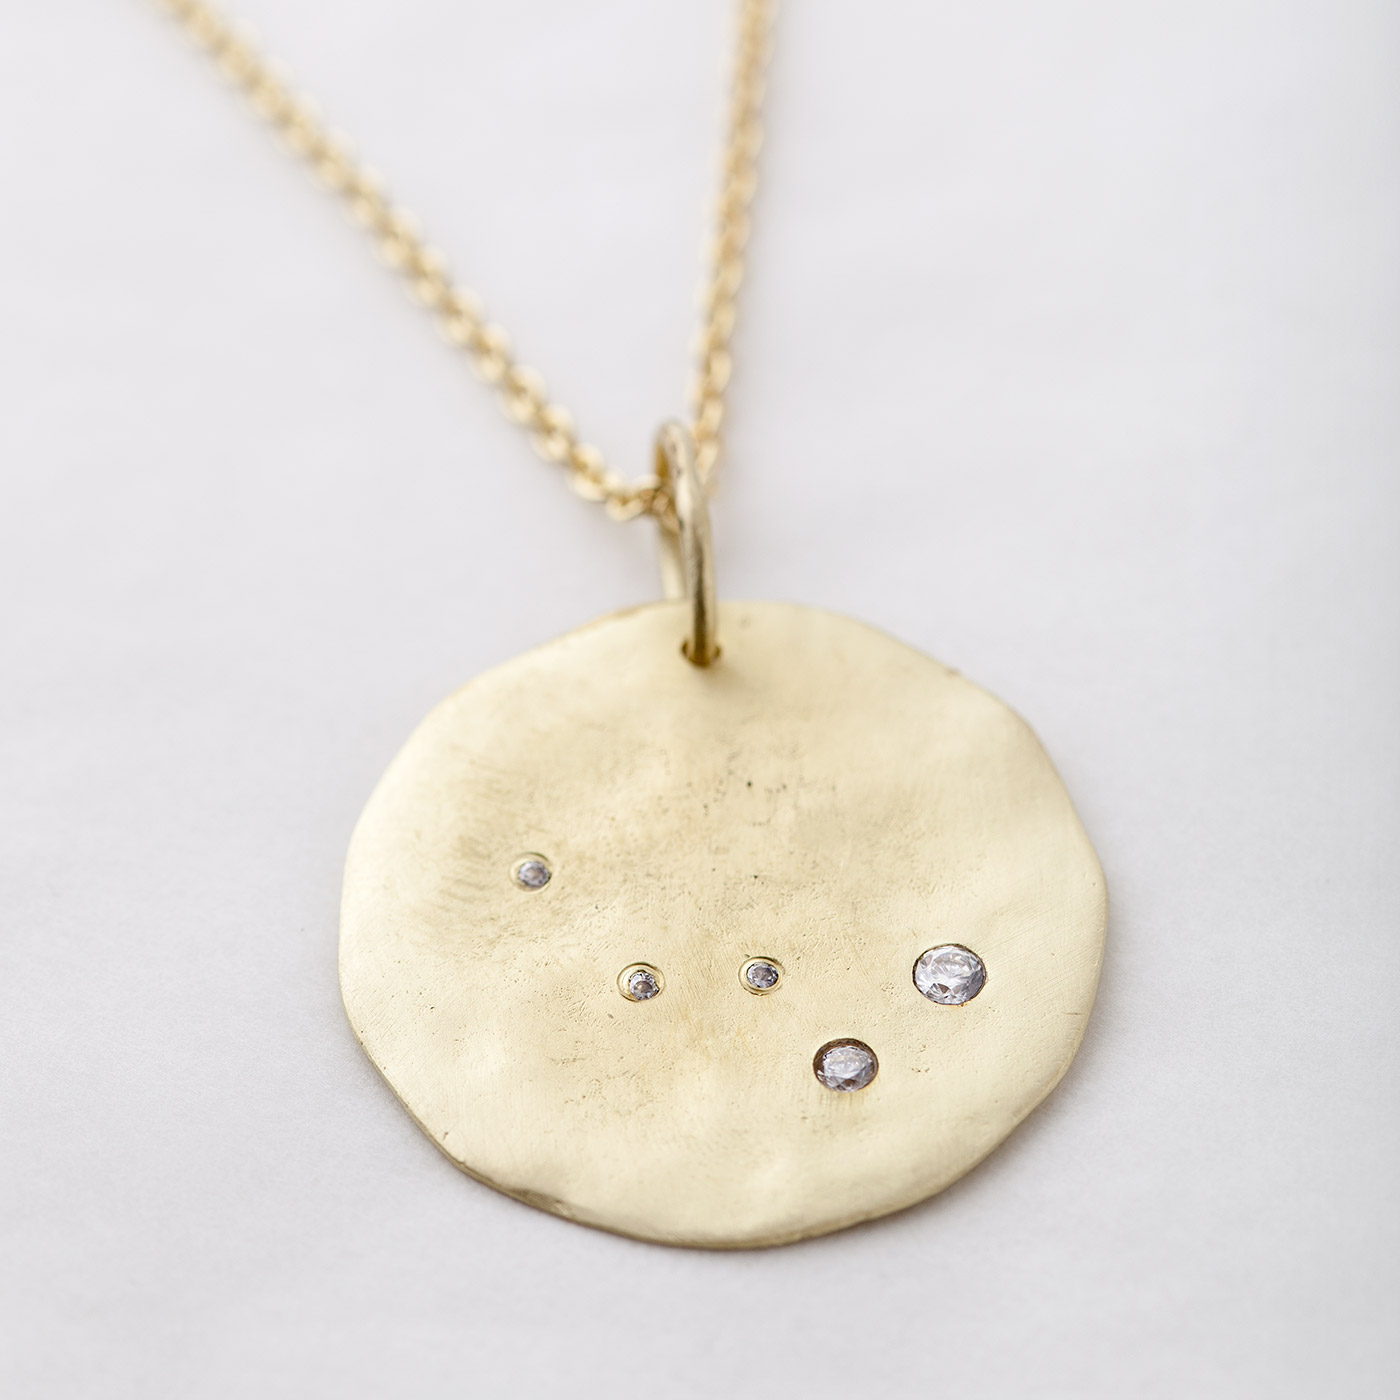 Roost large constellation pendant necklace womens apparel at vickerey roost large constellation pendant necklace aloadofball Choice Image